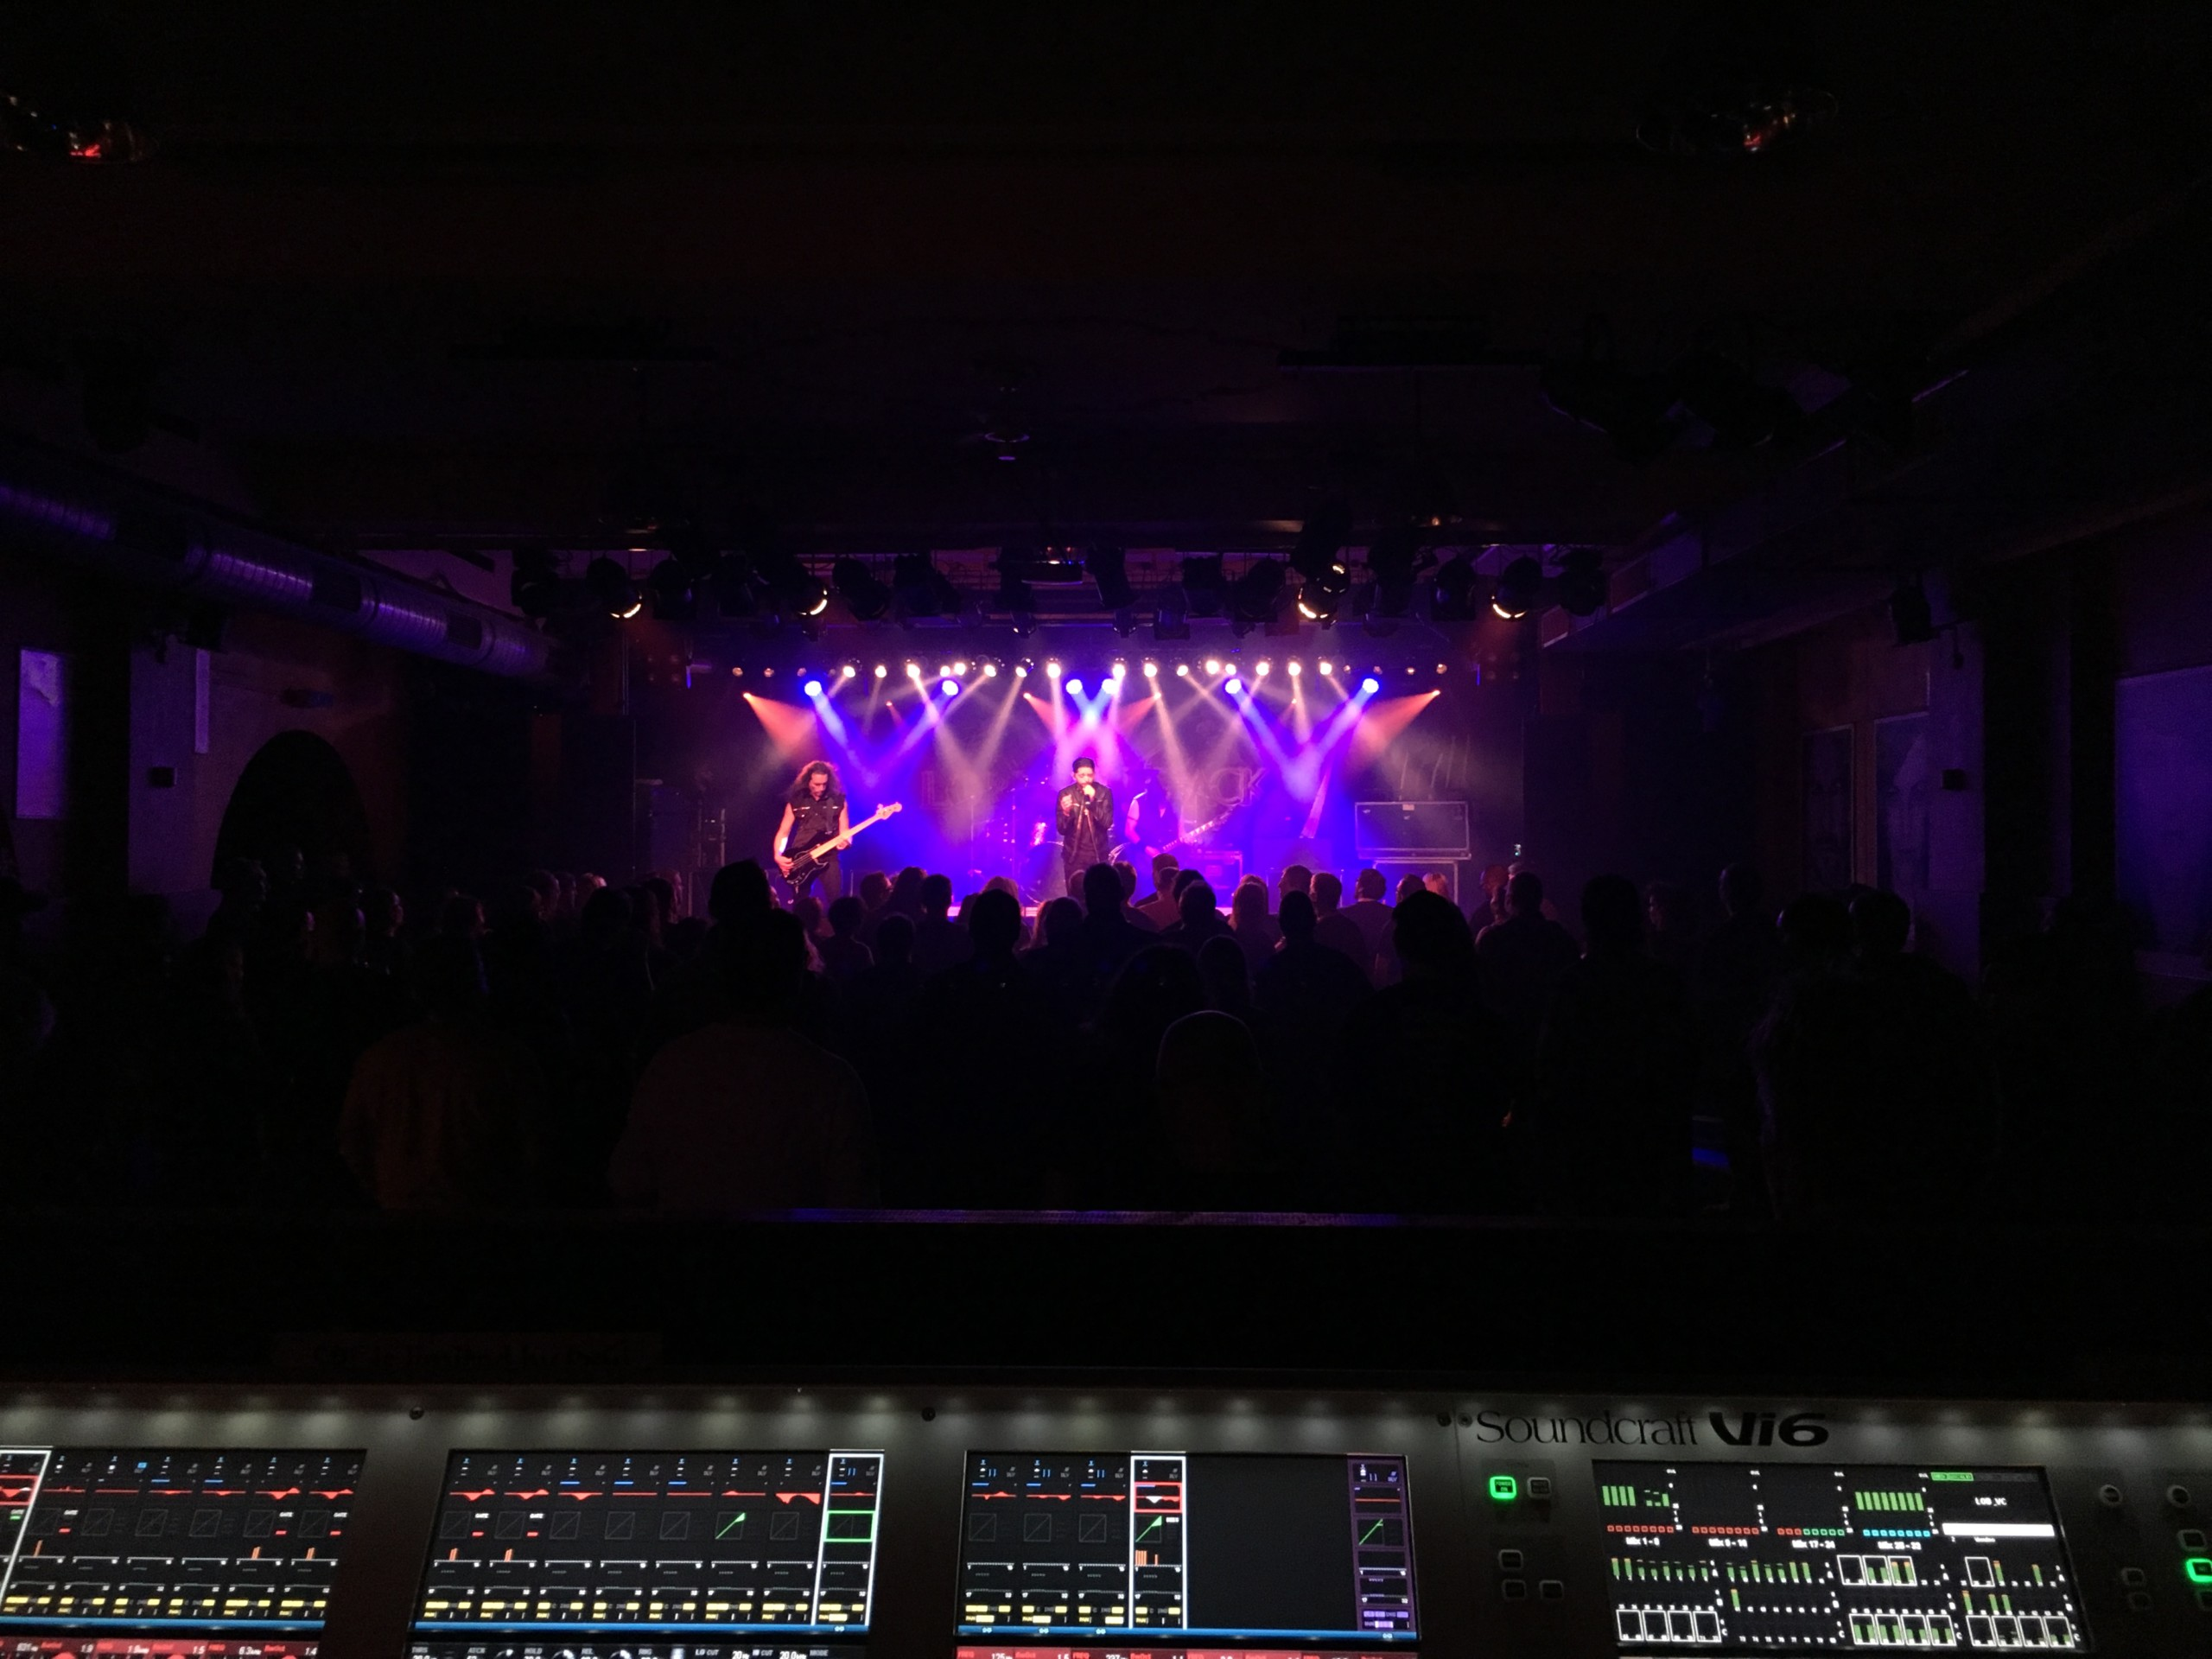 audio engineering recent work bands lords of black foh